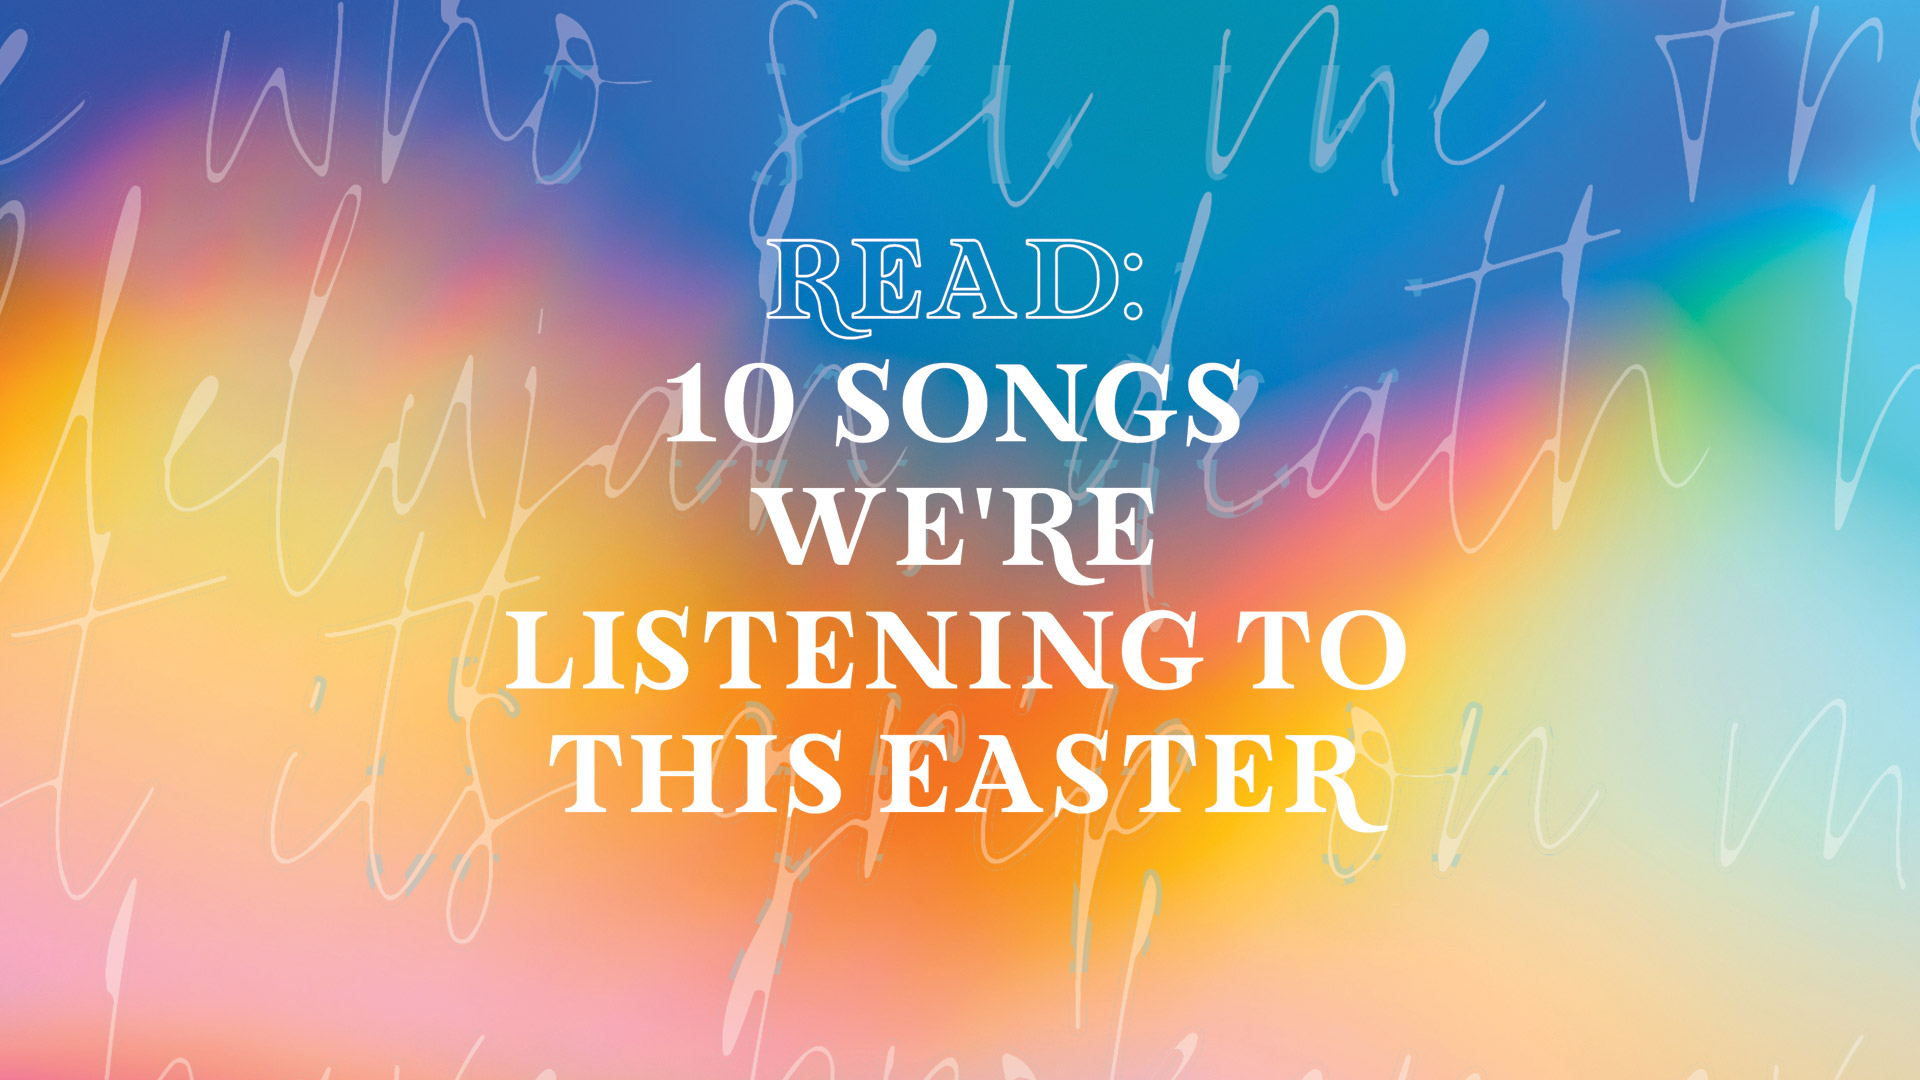 10 Songs We're Listening to This Easter (not in order)